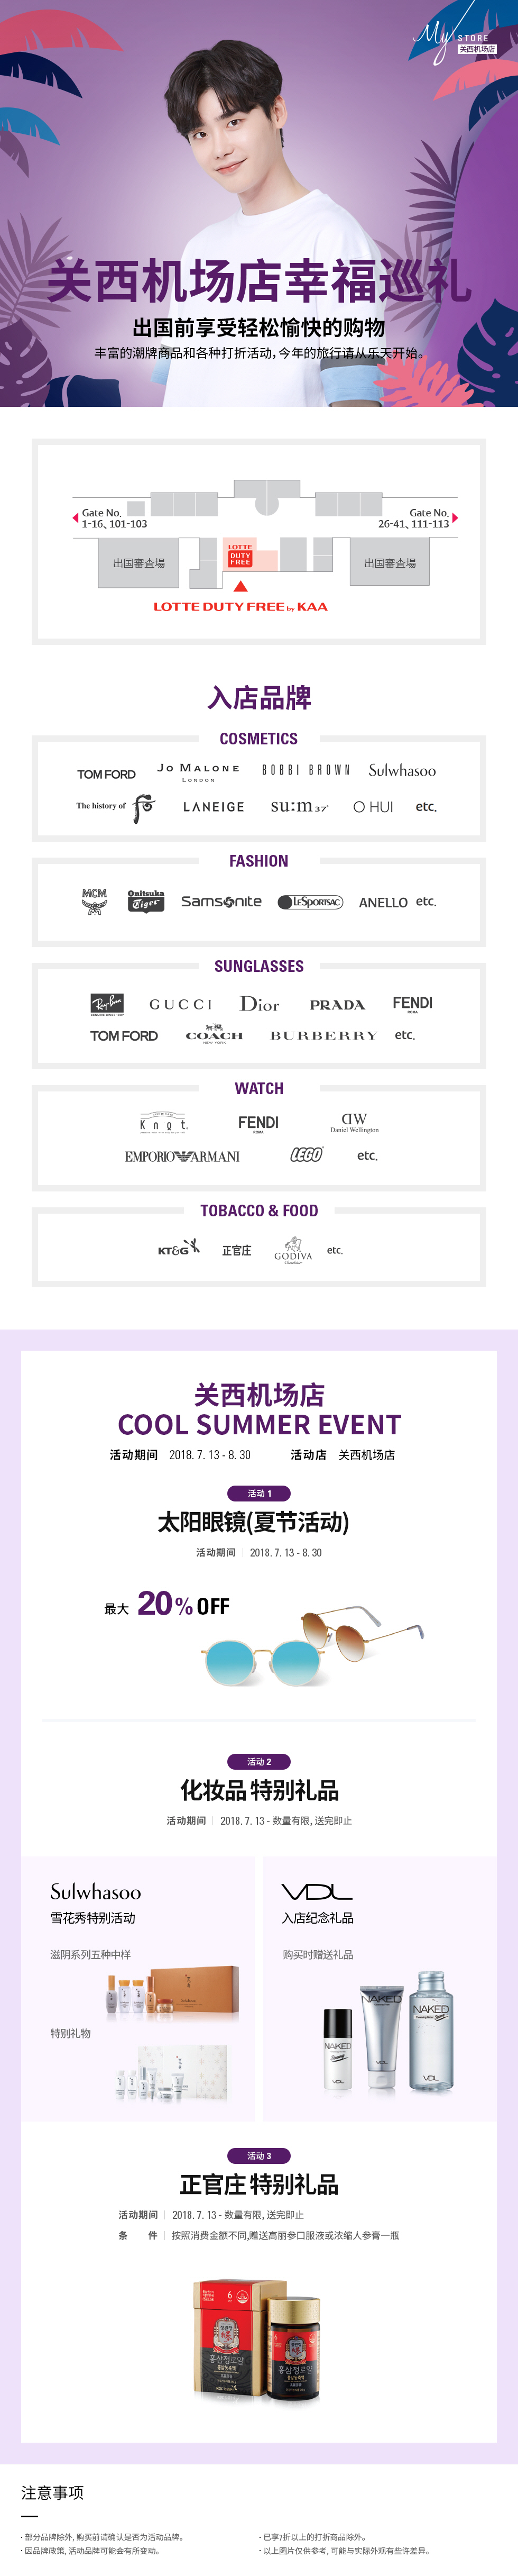 关西机场店 COOL SUMMER EVENT